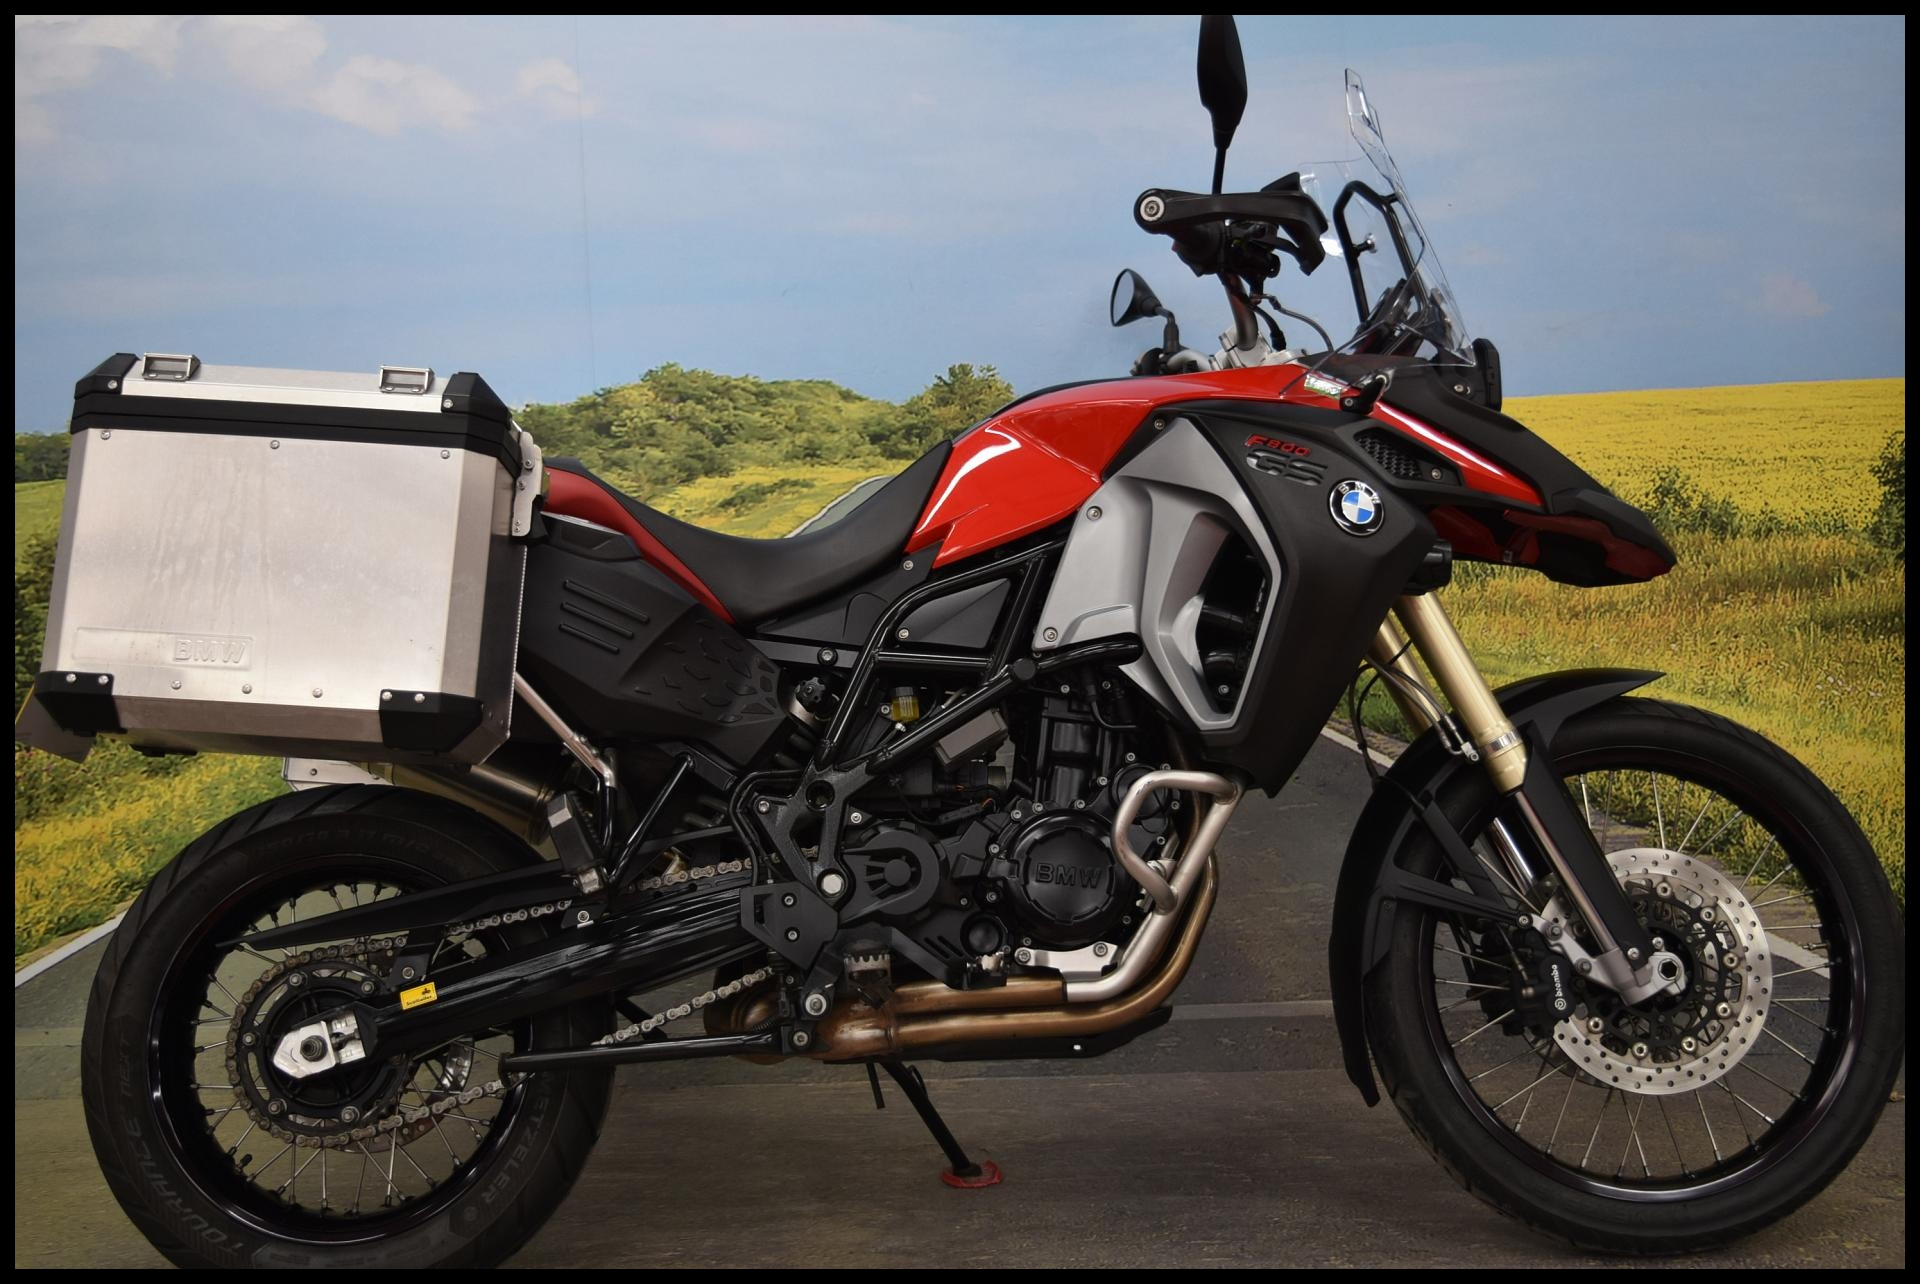 Bmw 900cc Motorcycles Best Bmw F800gs Adventure for Sale Finance Available and Part Exchange